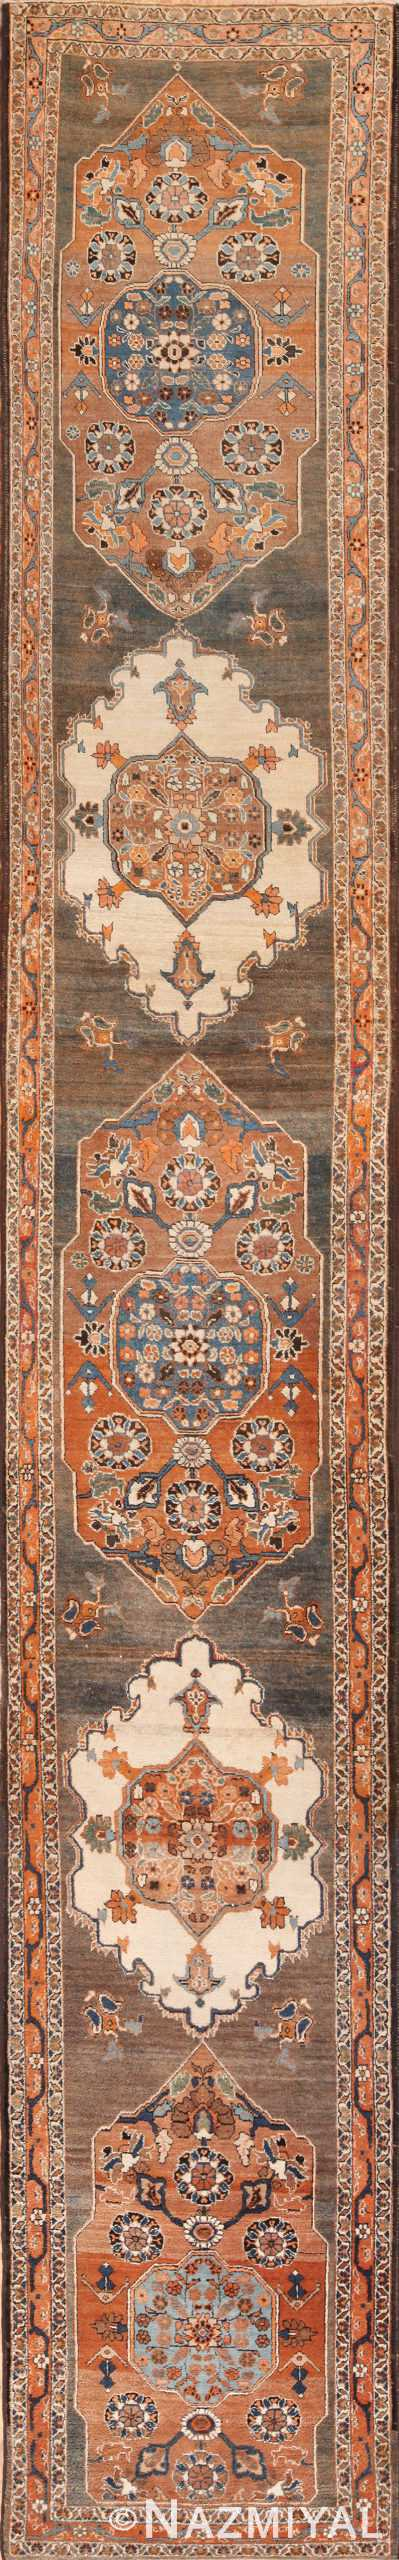 Long and Narrow Antique Persian Tabriz Runner Rug 49687 by Nazmiyal